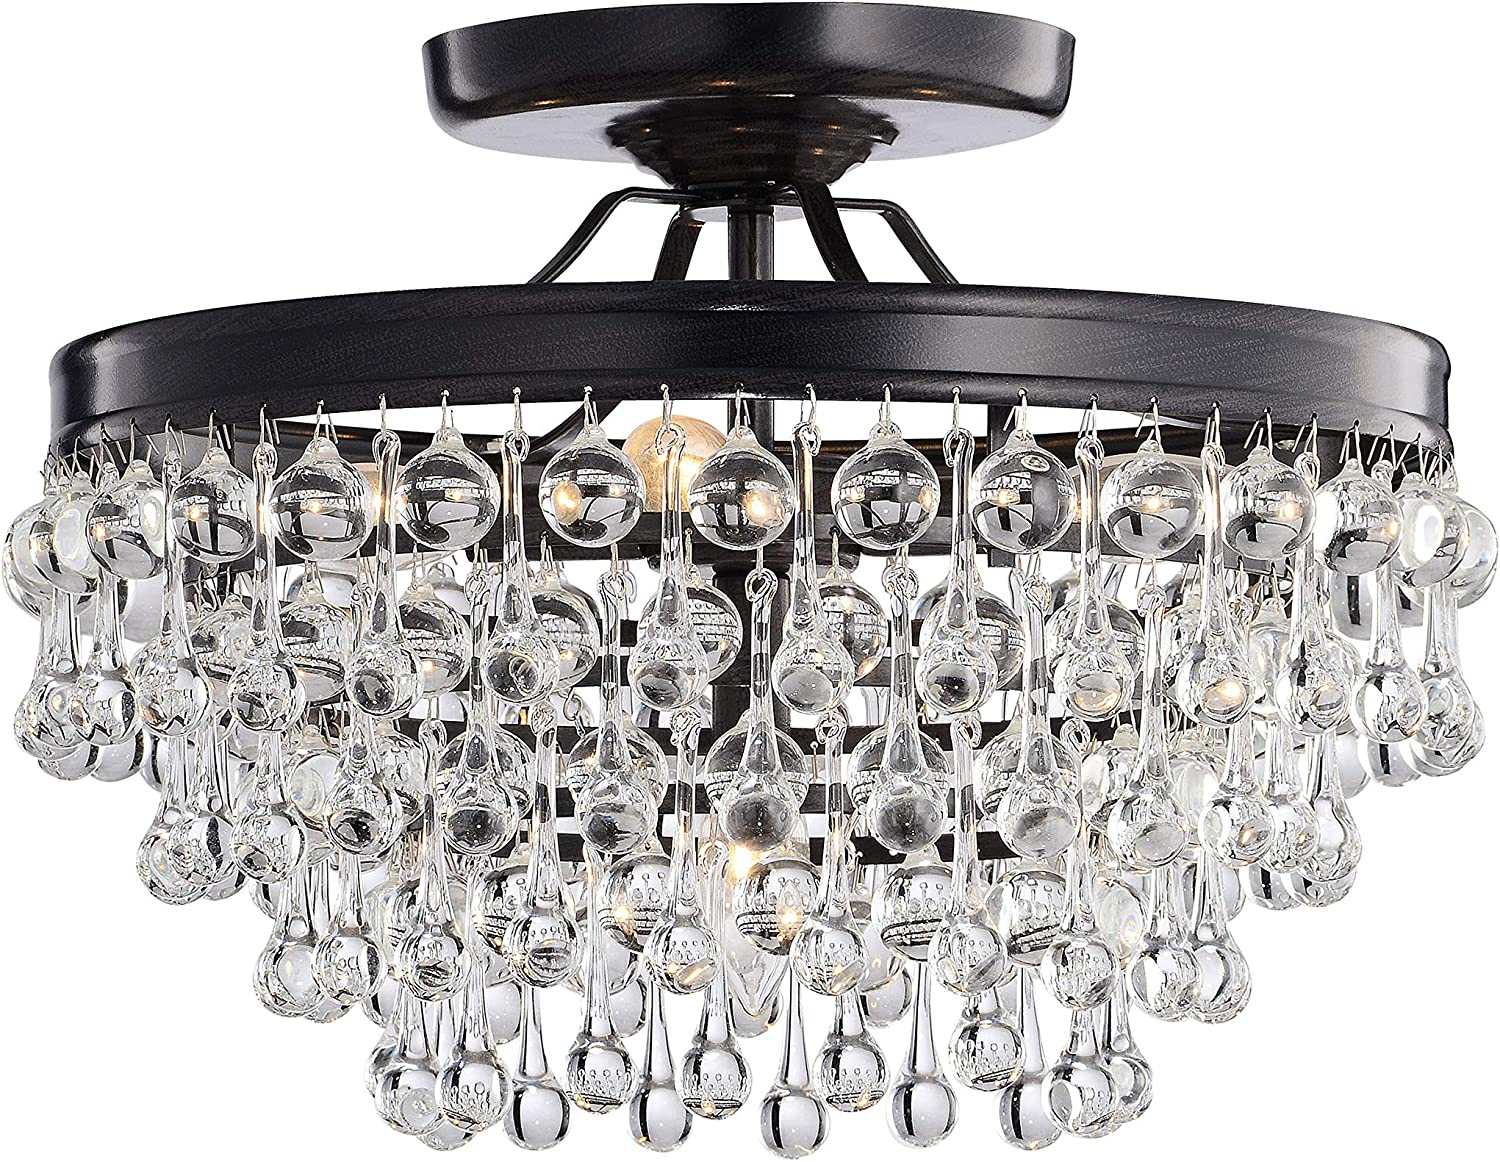 Ceiling Mount Glass Chandelier Ceiling Mount Glass